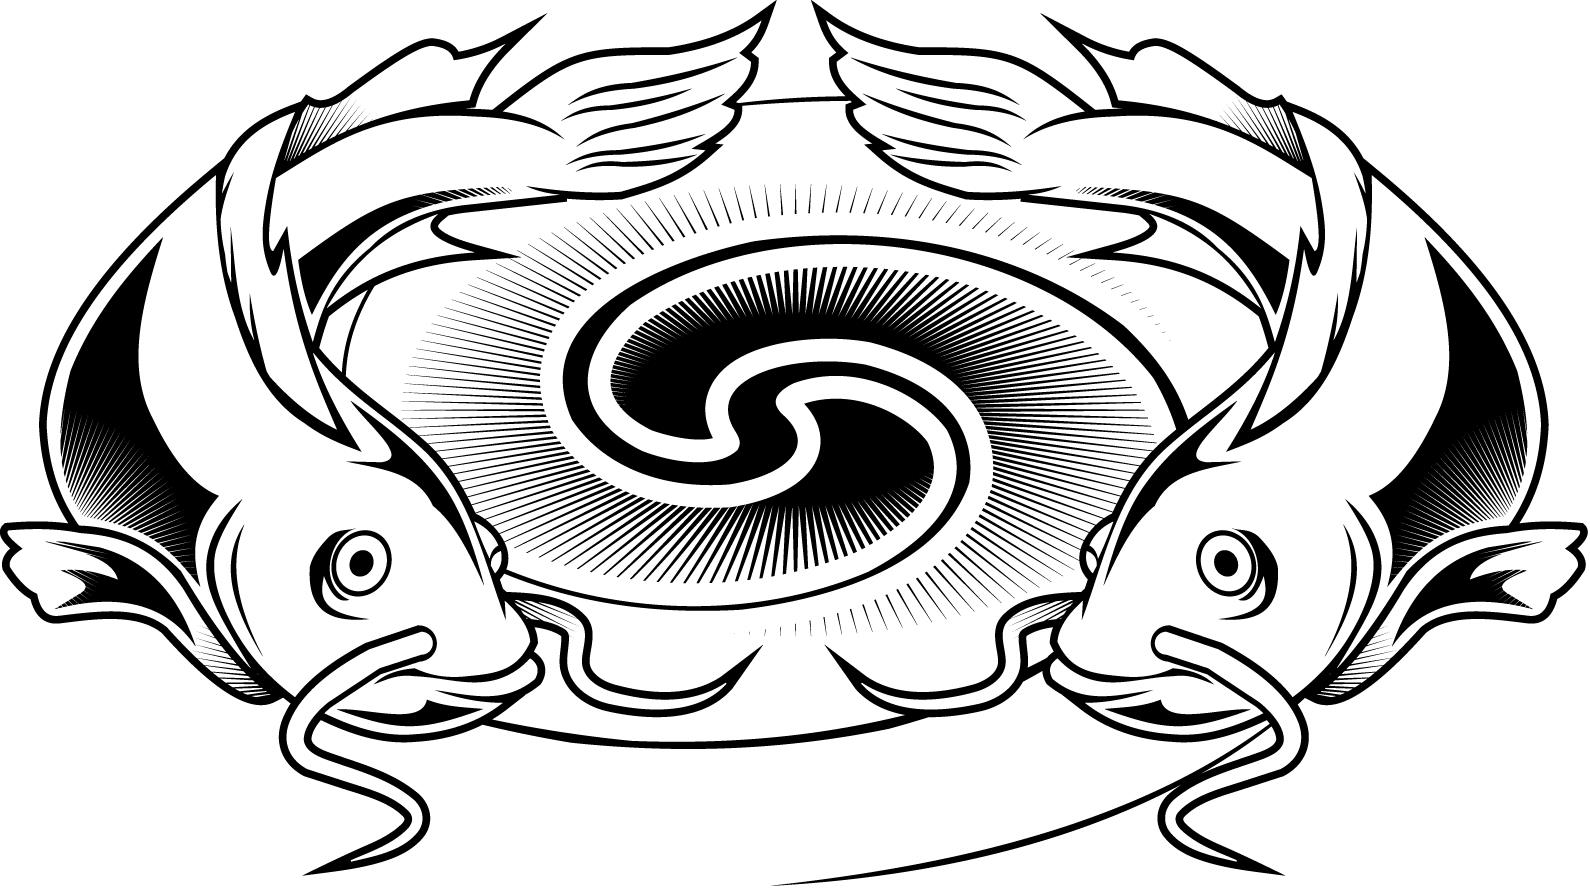 Catfish clipart coloring page. Colouring pages of a